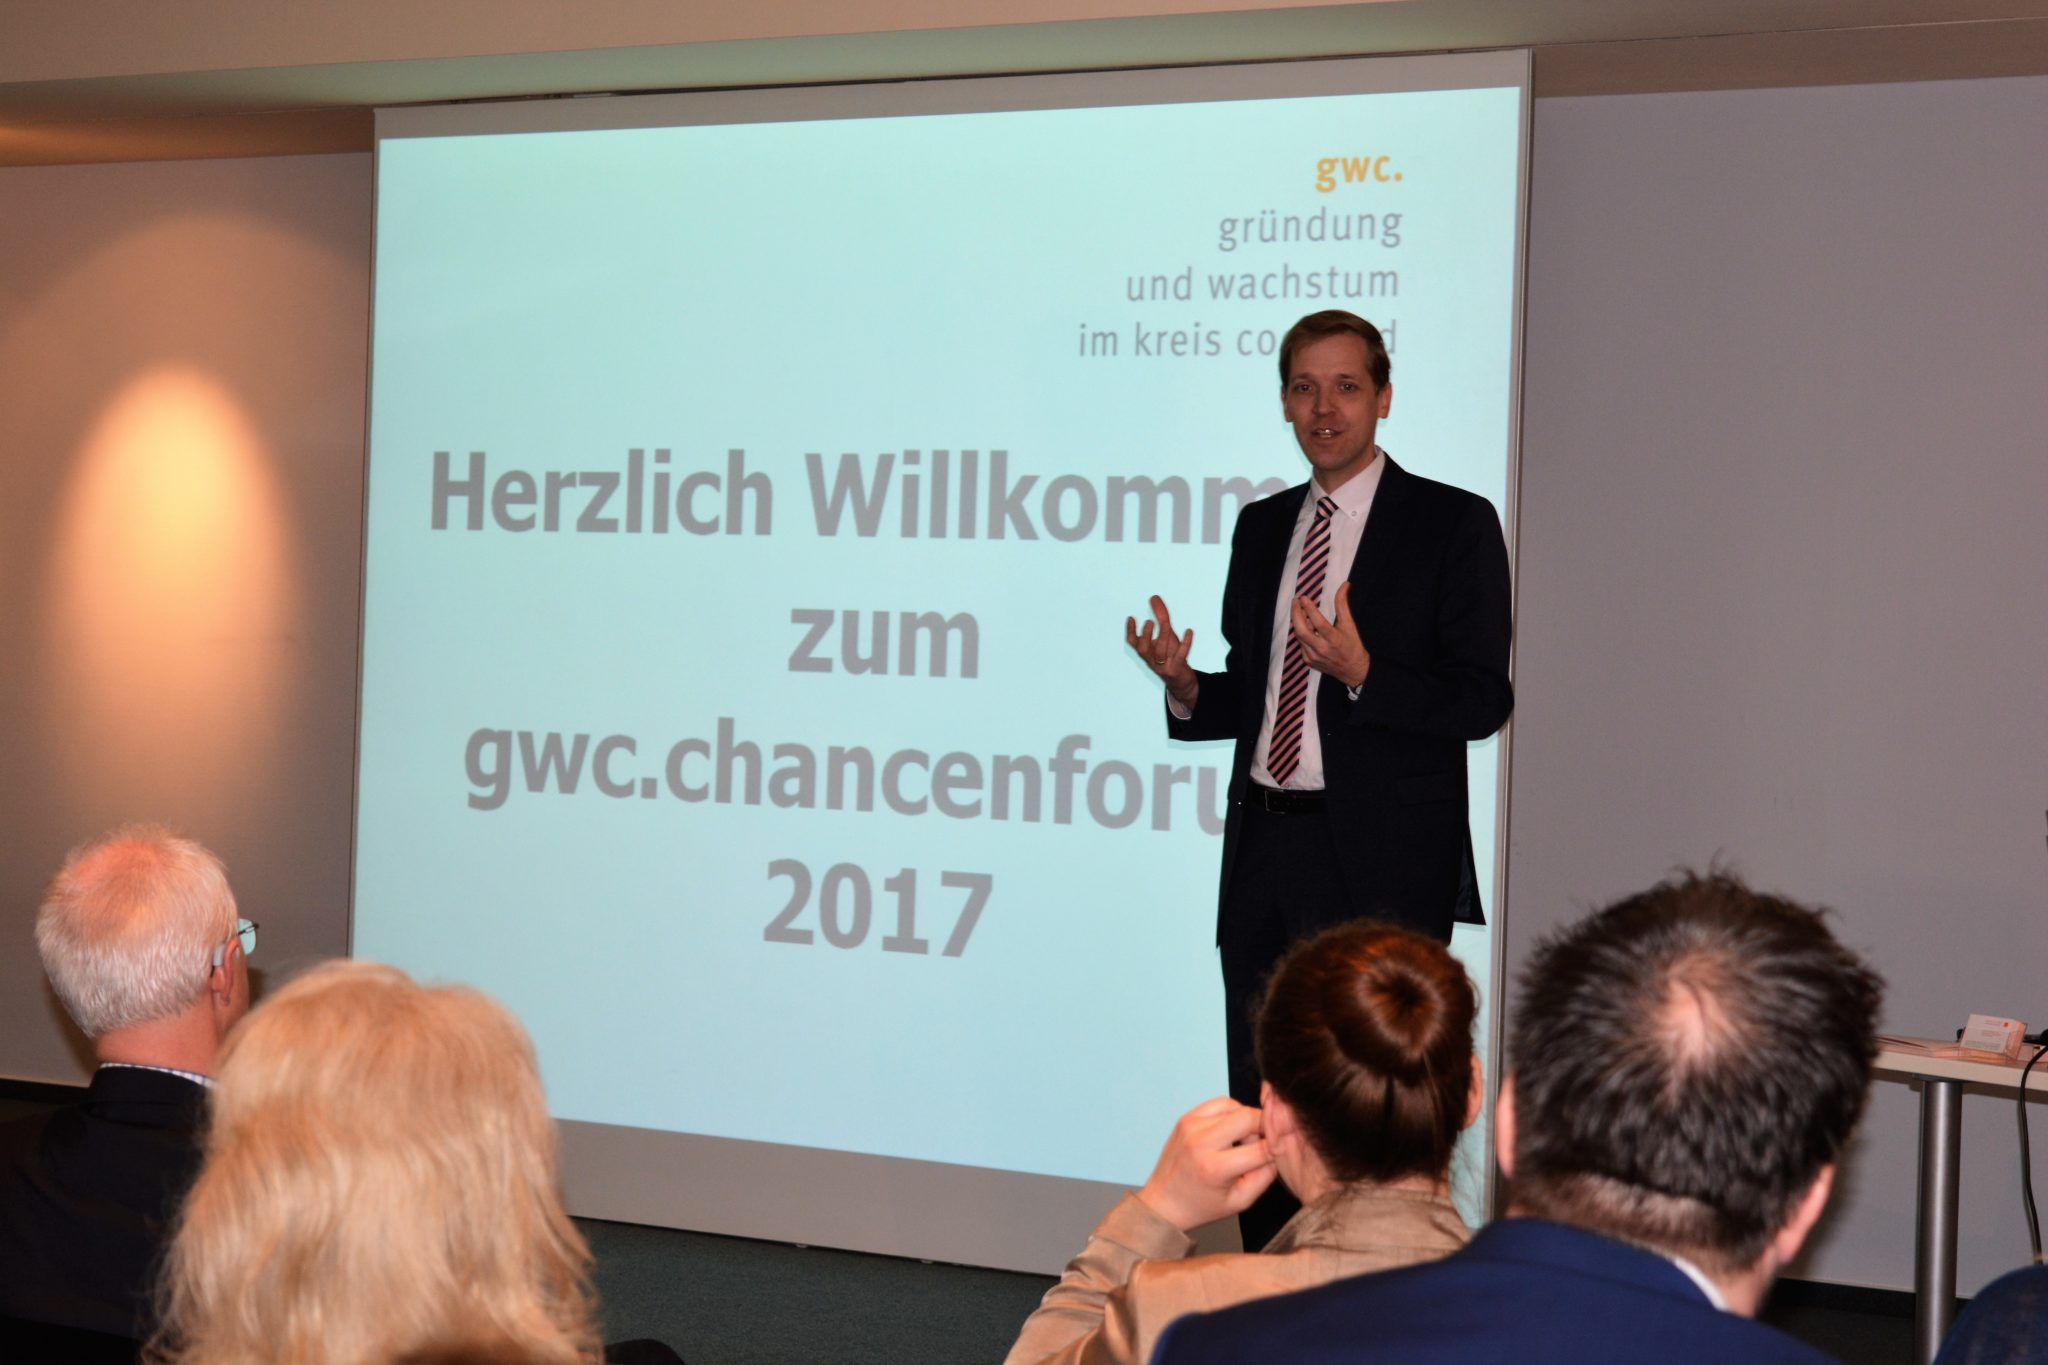 gwc.chancenforum 2017